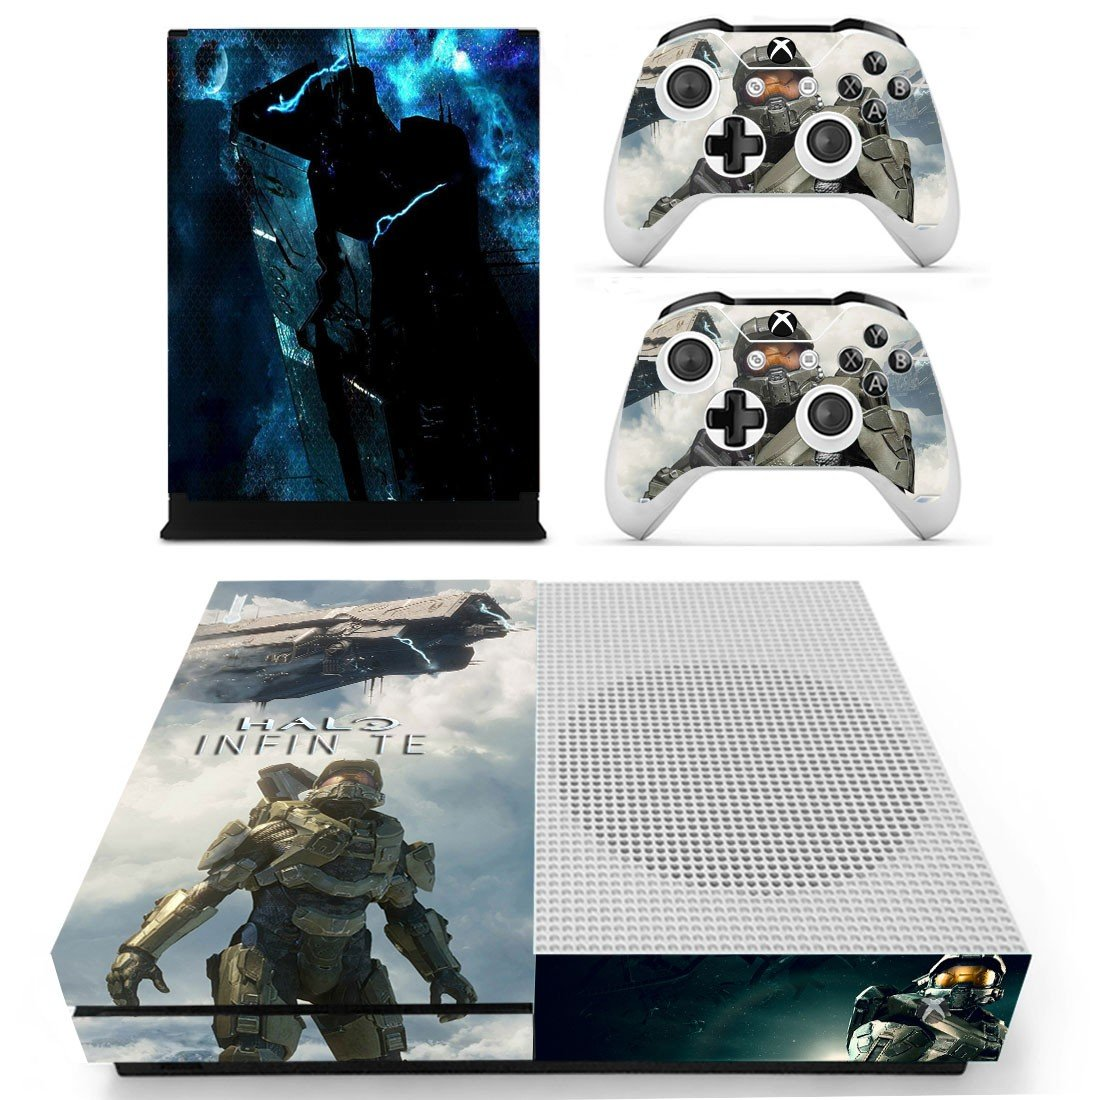 Halo Infinite decal skin sticker for Xbox One S console and controllers